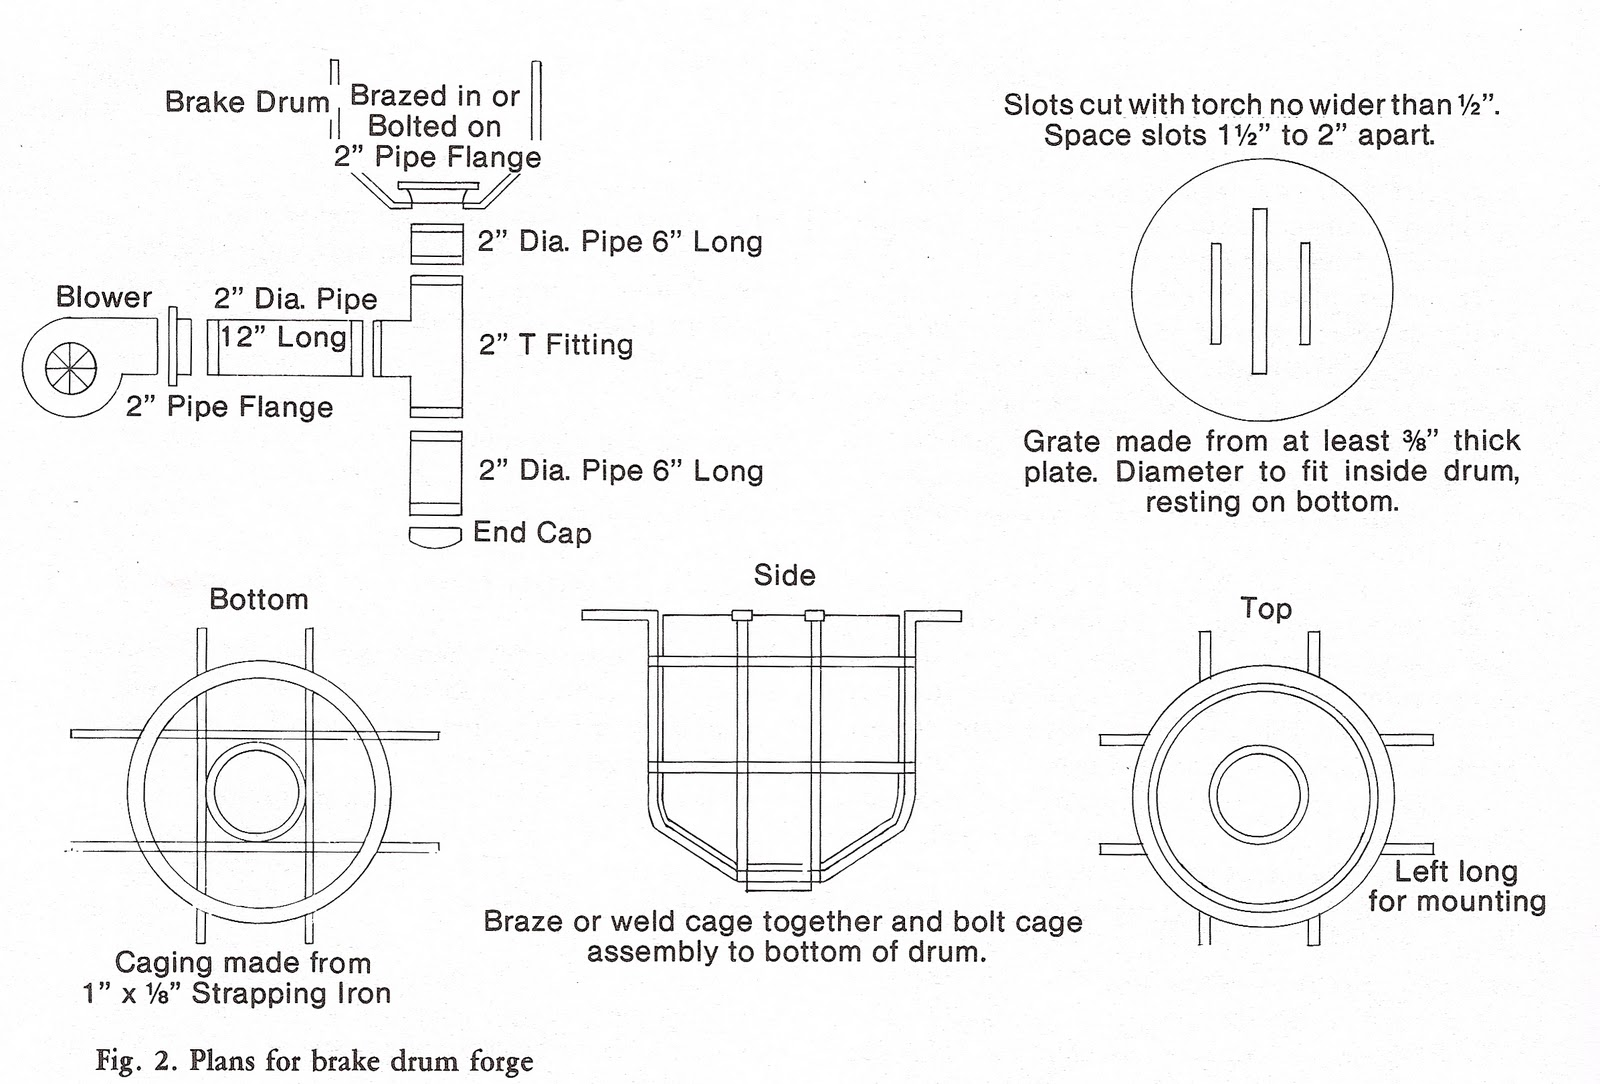 Forging For Combat Thesis Presentation Forge Welding Diagram Looking At These Diagrams Is Part Of What Helped Us To Realize The Ways Improve Our Current Coal We Realized That Blower Was Much Too Weak